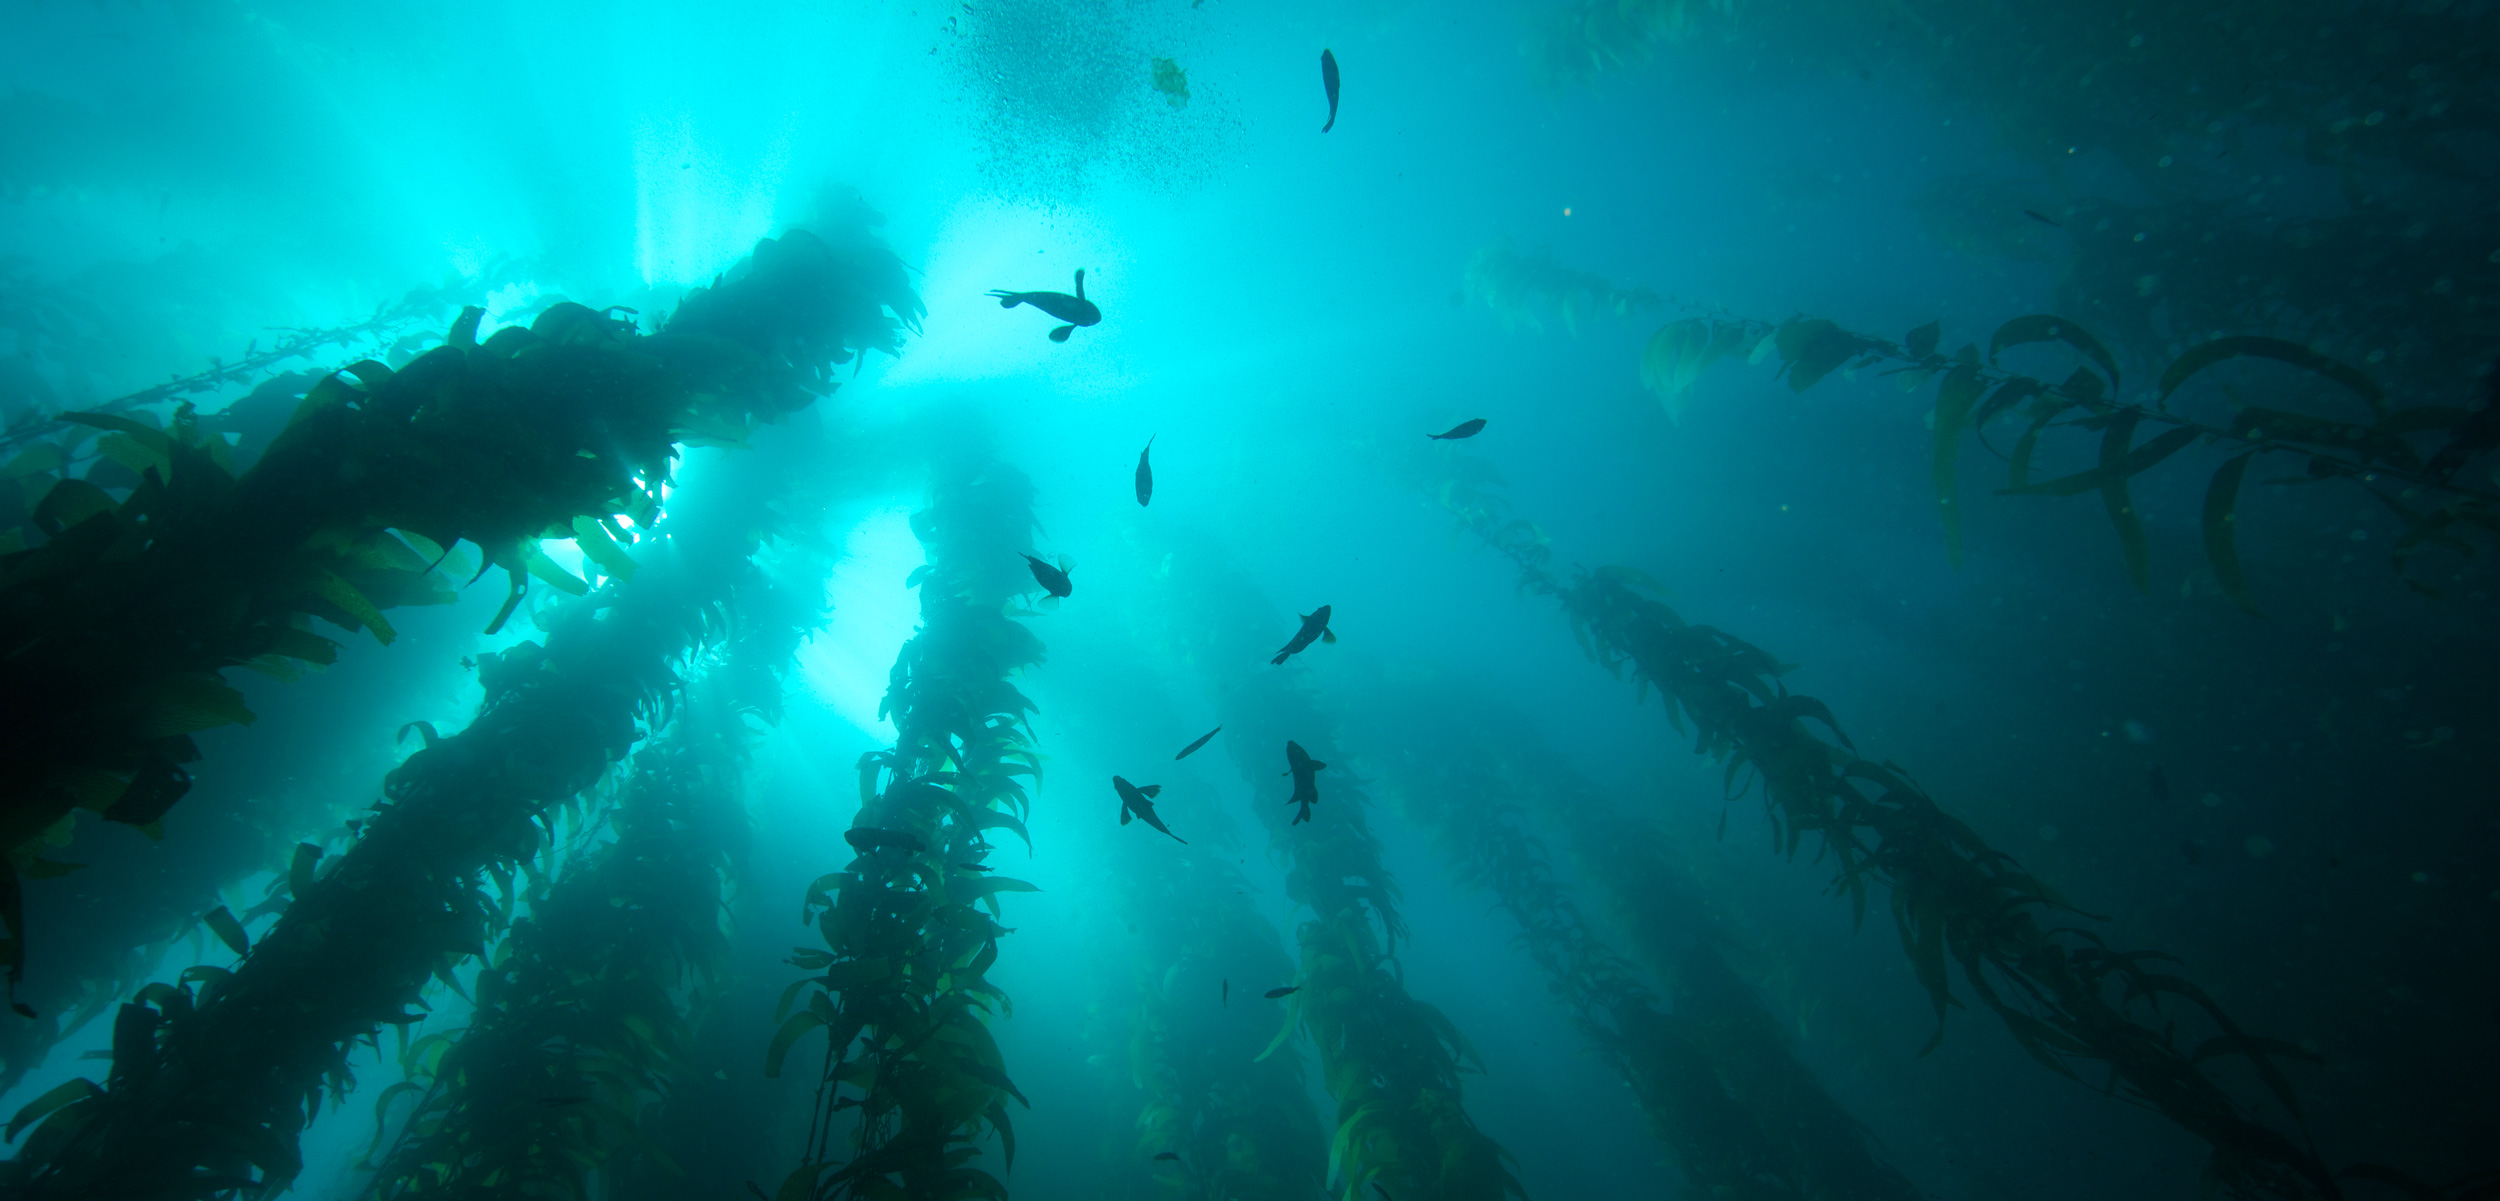 fish swim amongst giant kelp